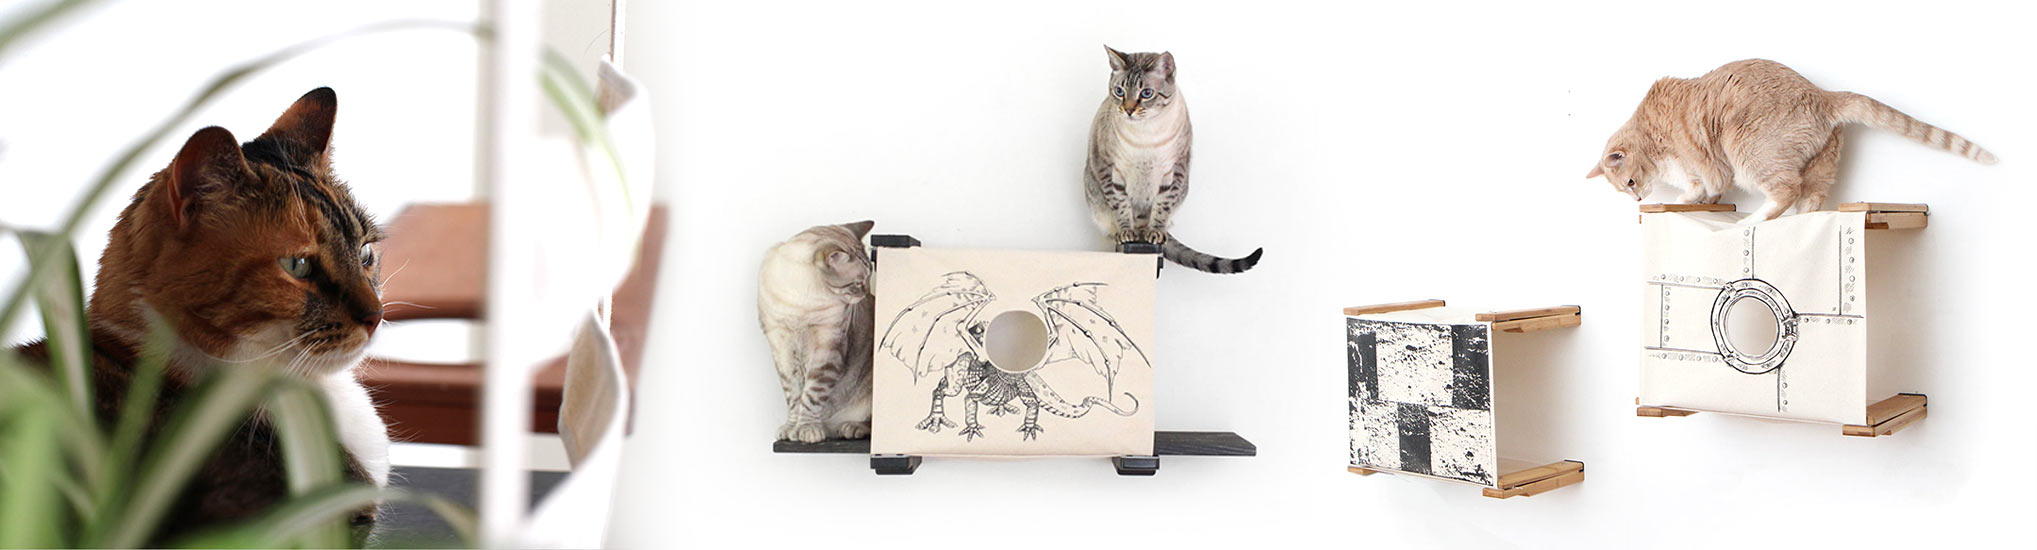 cats playing on cat furniture